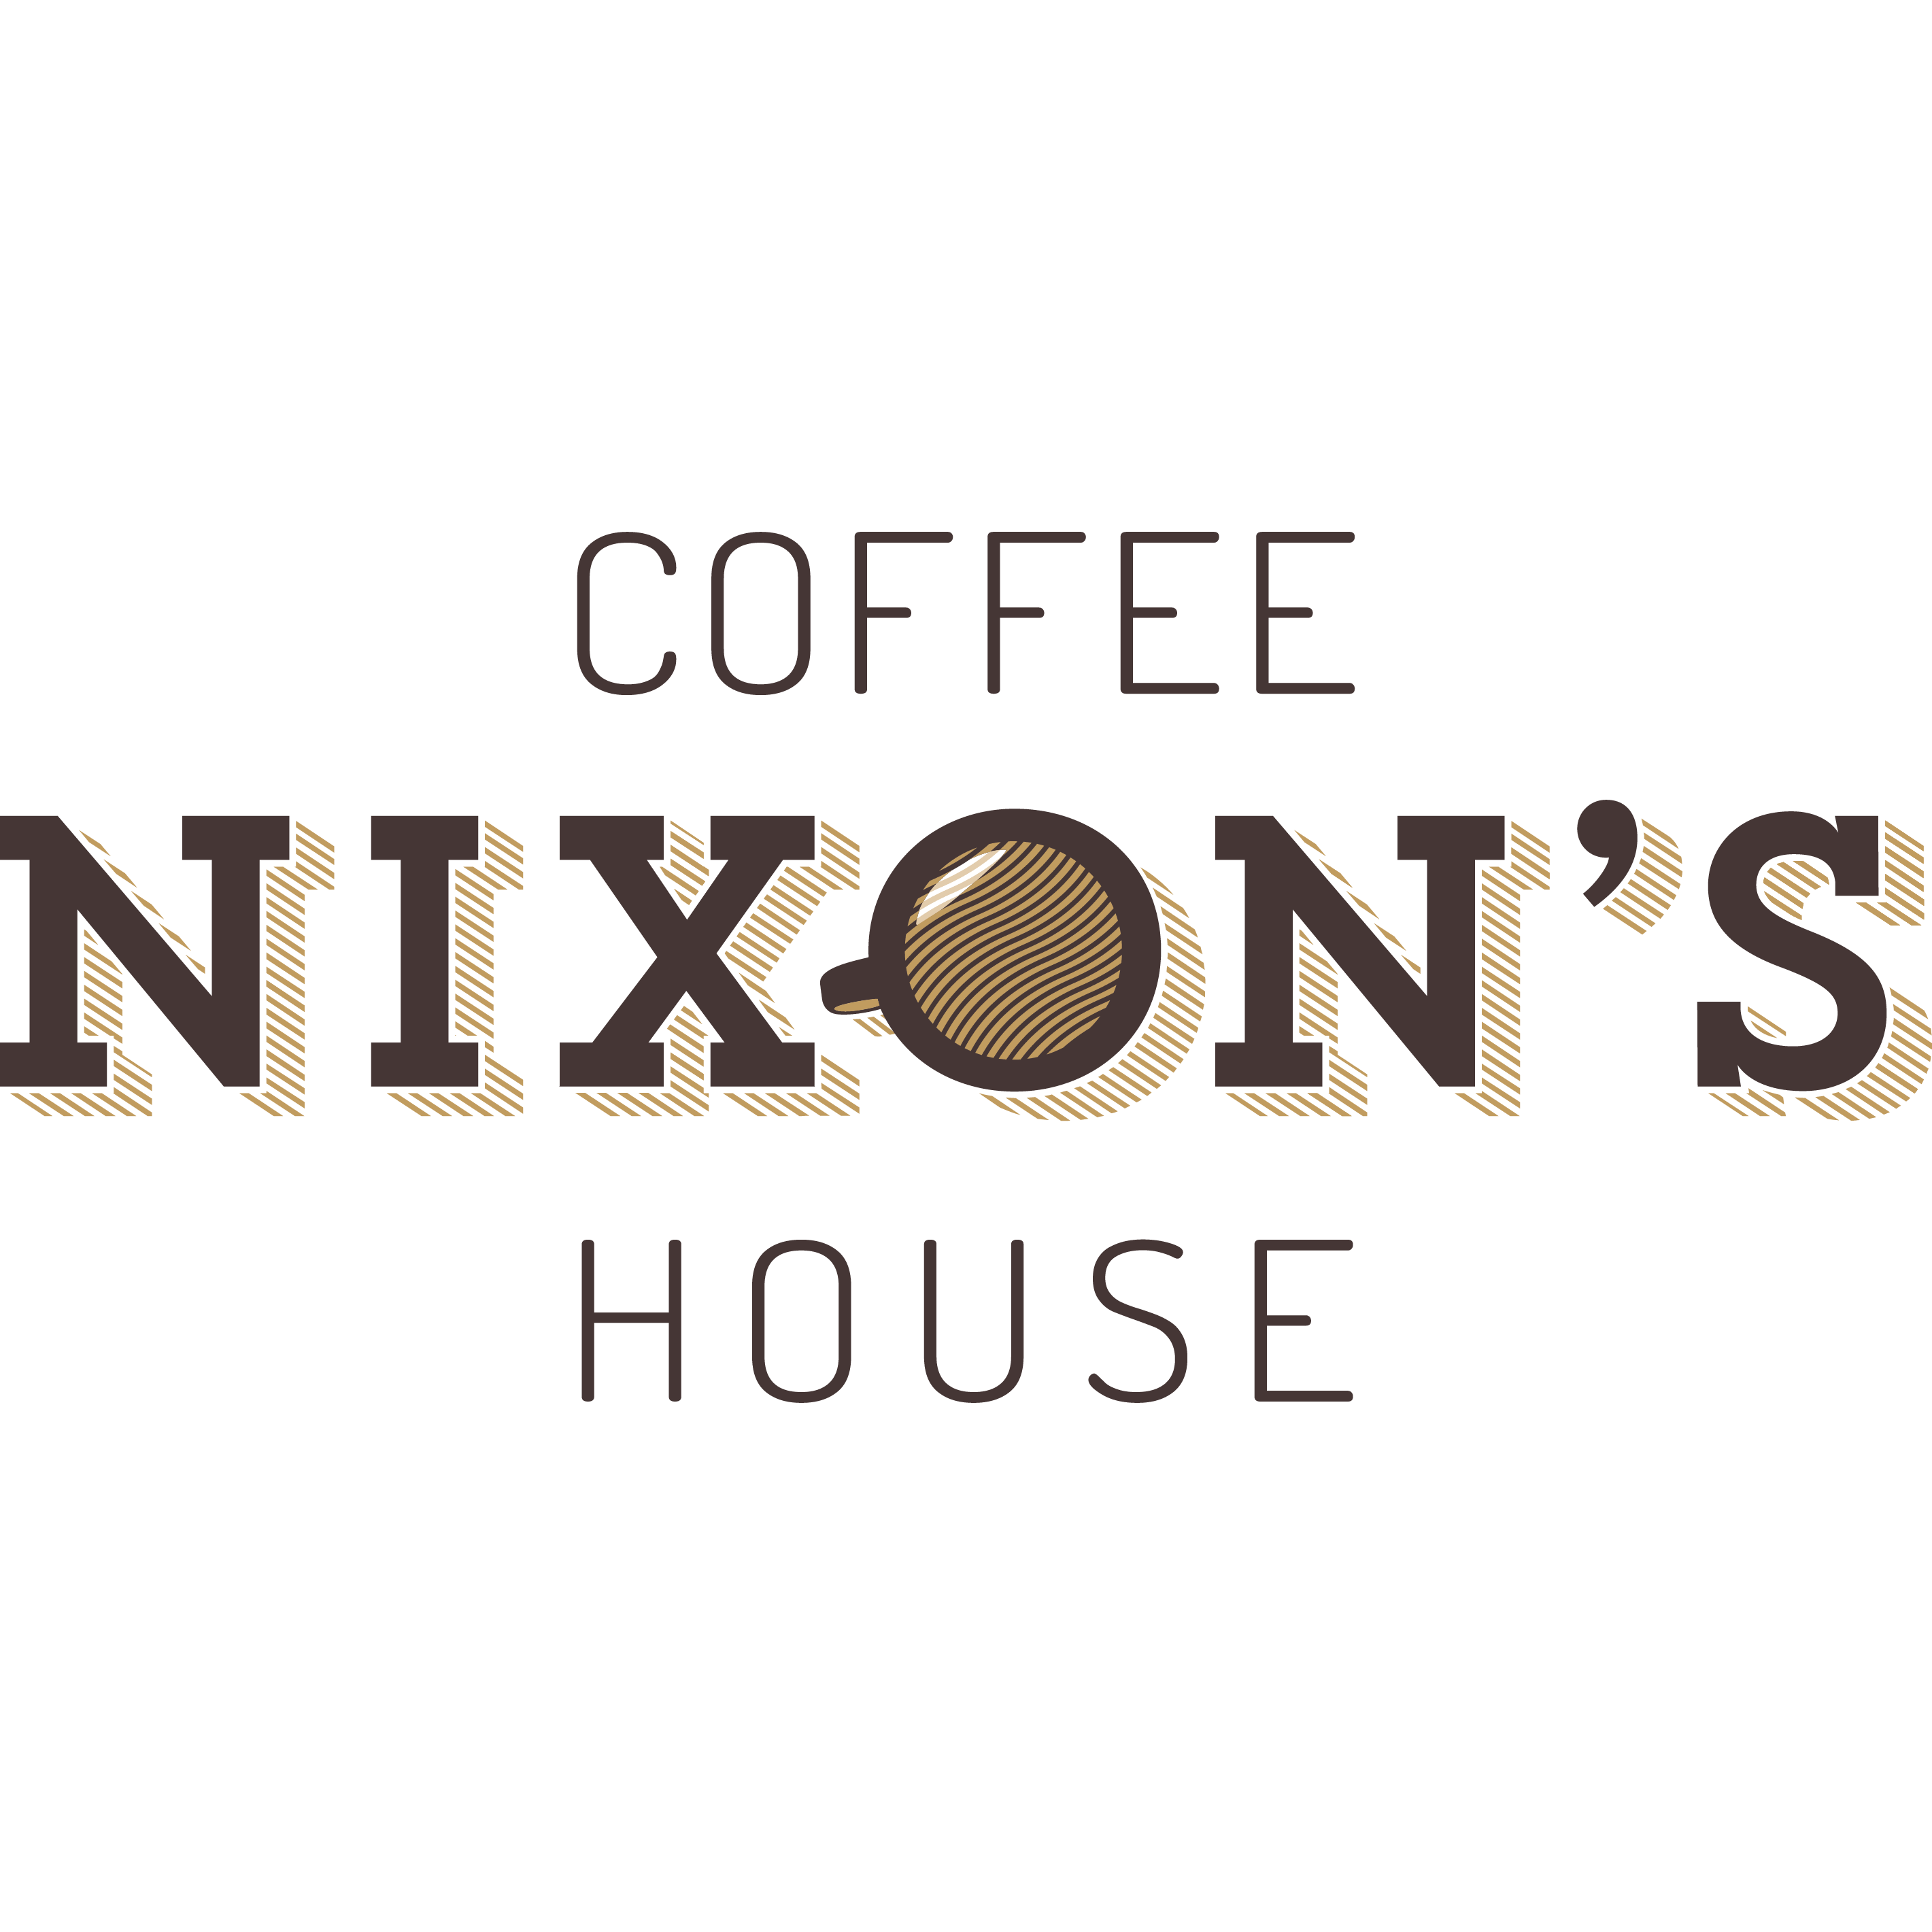 Nixon's Coffee House - Denver, CO 80210 - (303)504-5224 | ShowMeLocal.com